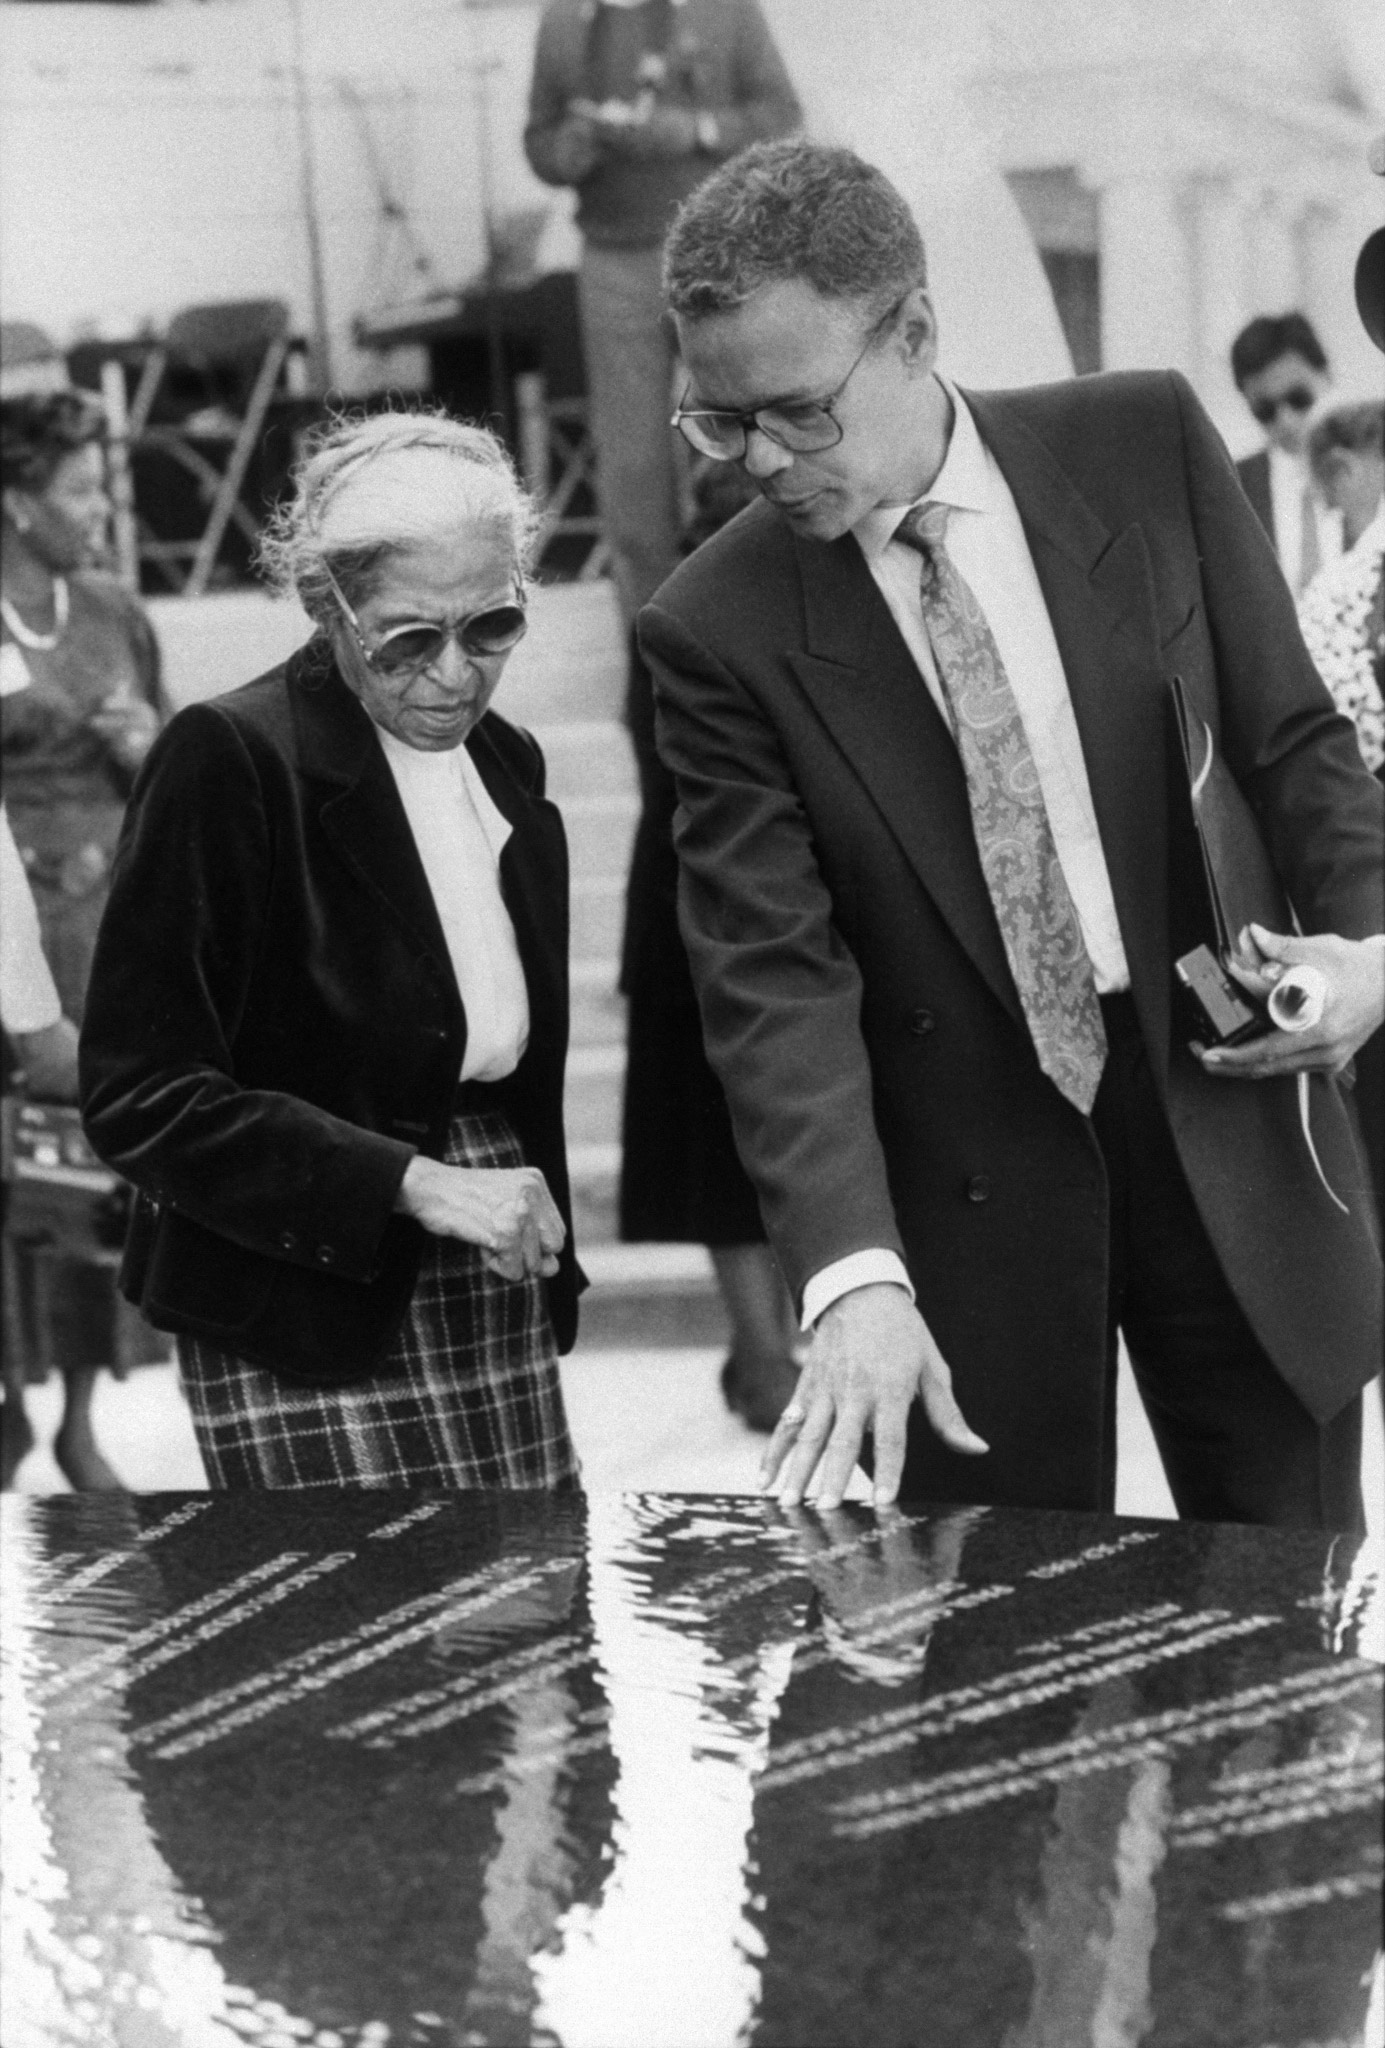 Julian Bond with Rosa Parks at a civil rights monument designed by architect Maya Lin, during a ceremony dedicating monument at Southern Poverty Law Center in Montgomery, Ala., on Nov. 6, 1989.